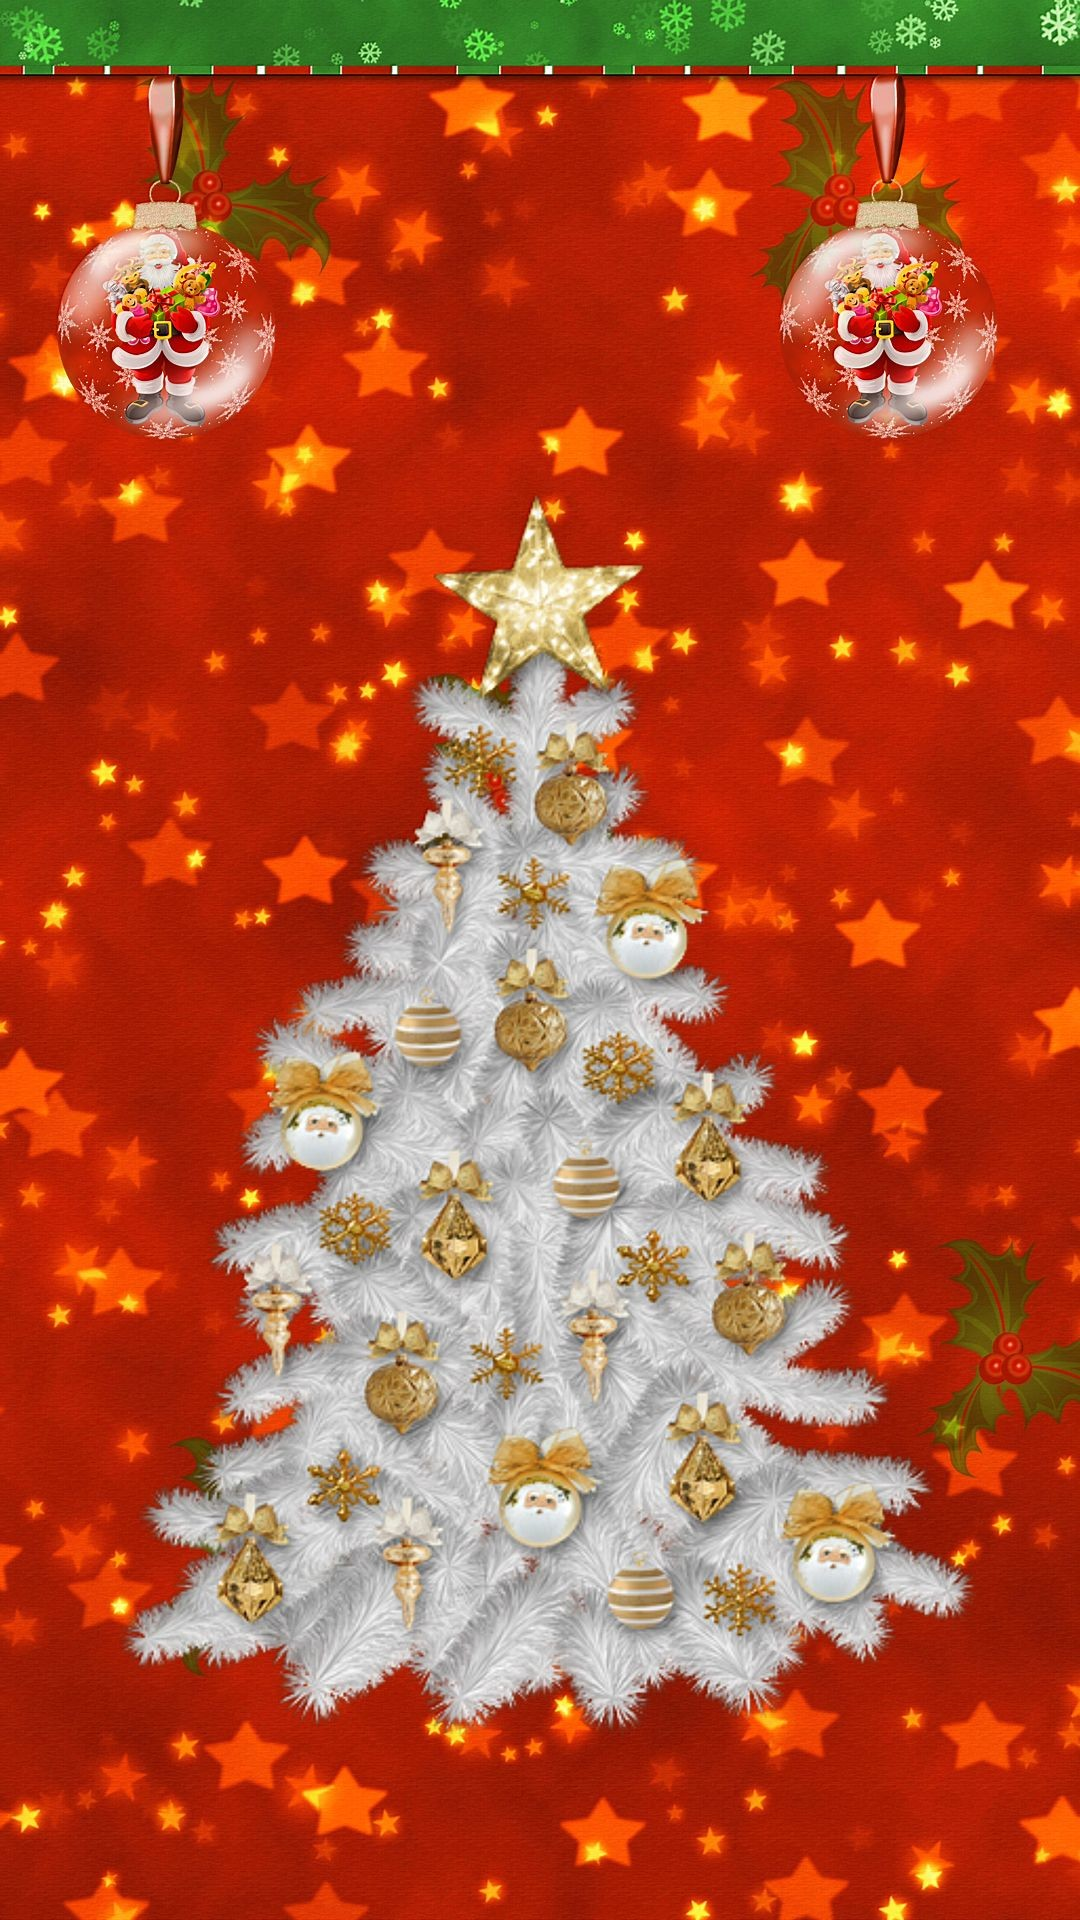 1080x1920 Christmas Time (Wallpapers) | ❣ ReeseyBelle ❣